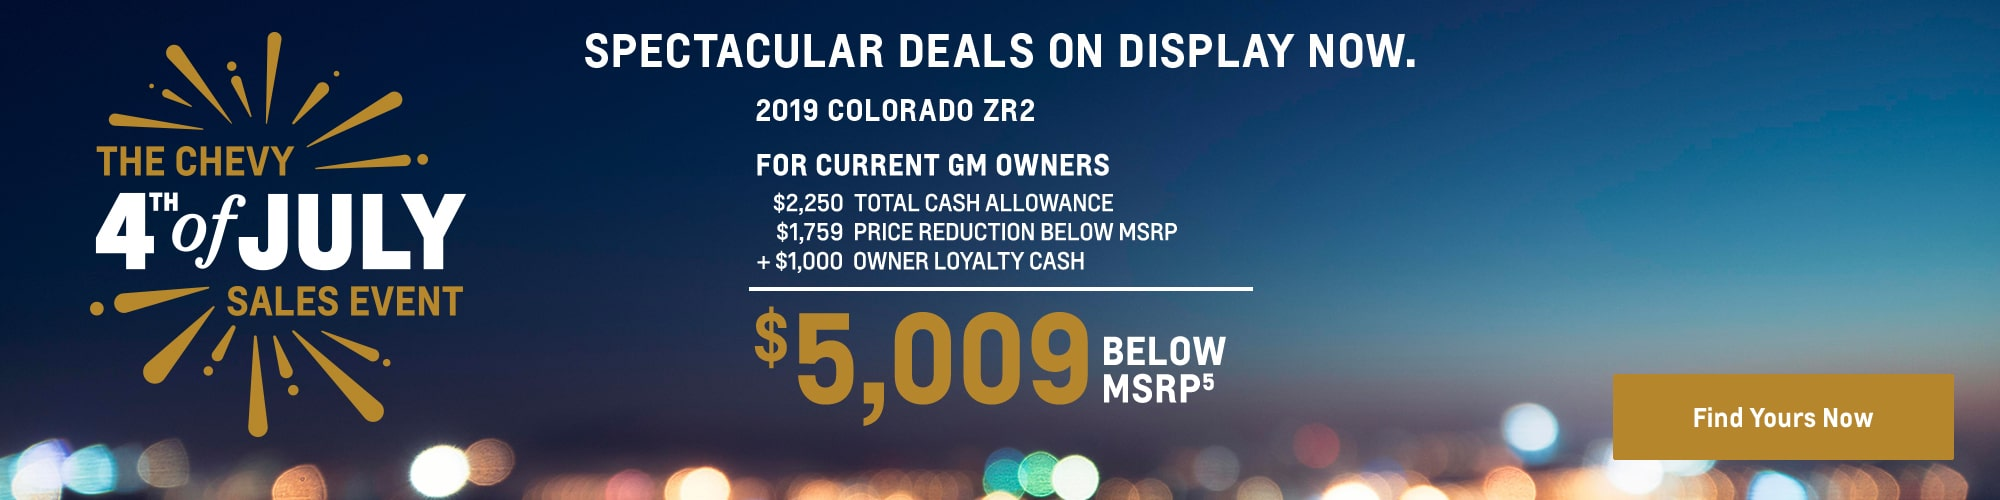 2019 Colorado: $5,009 Below MSRP